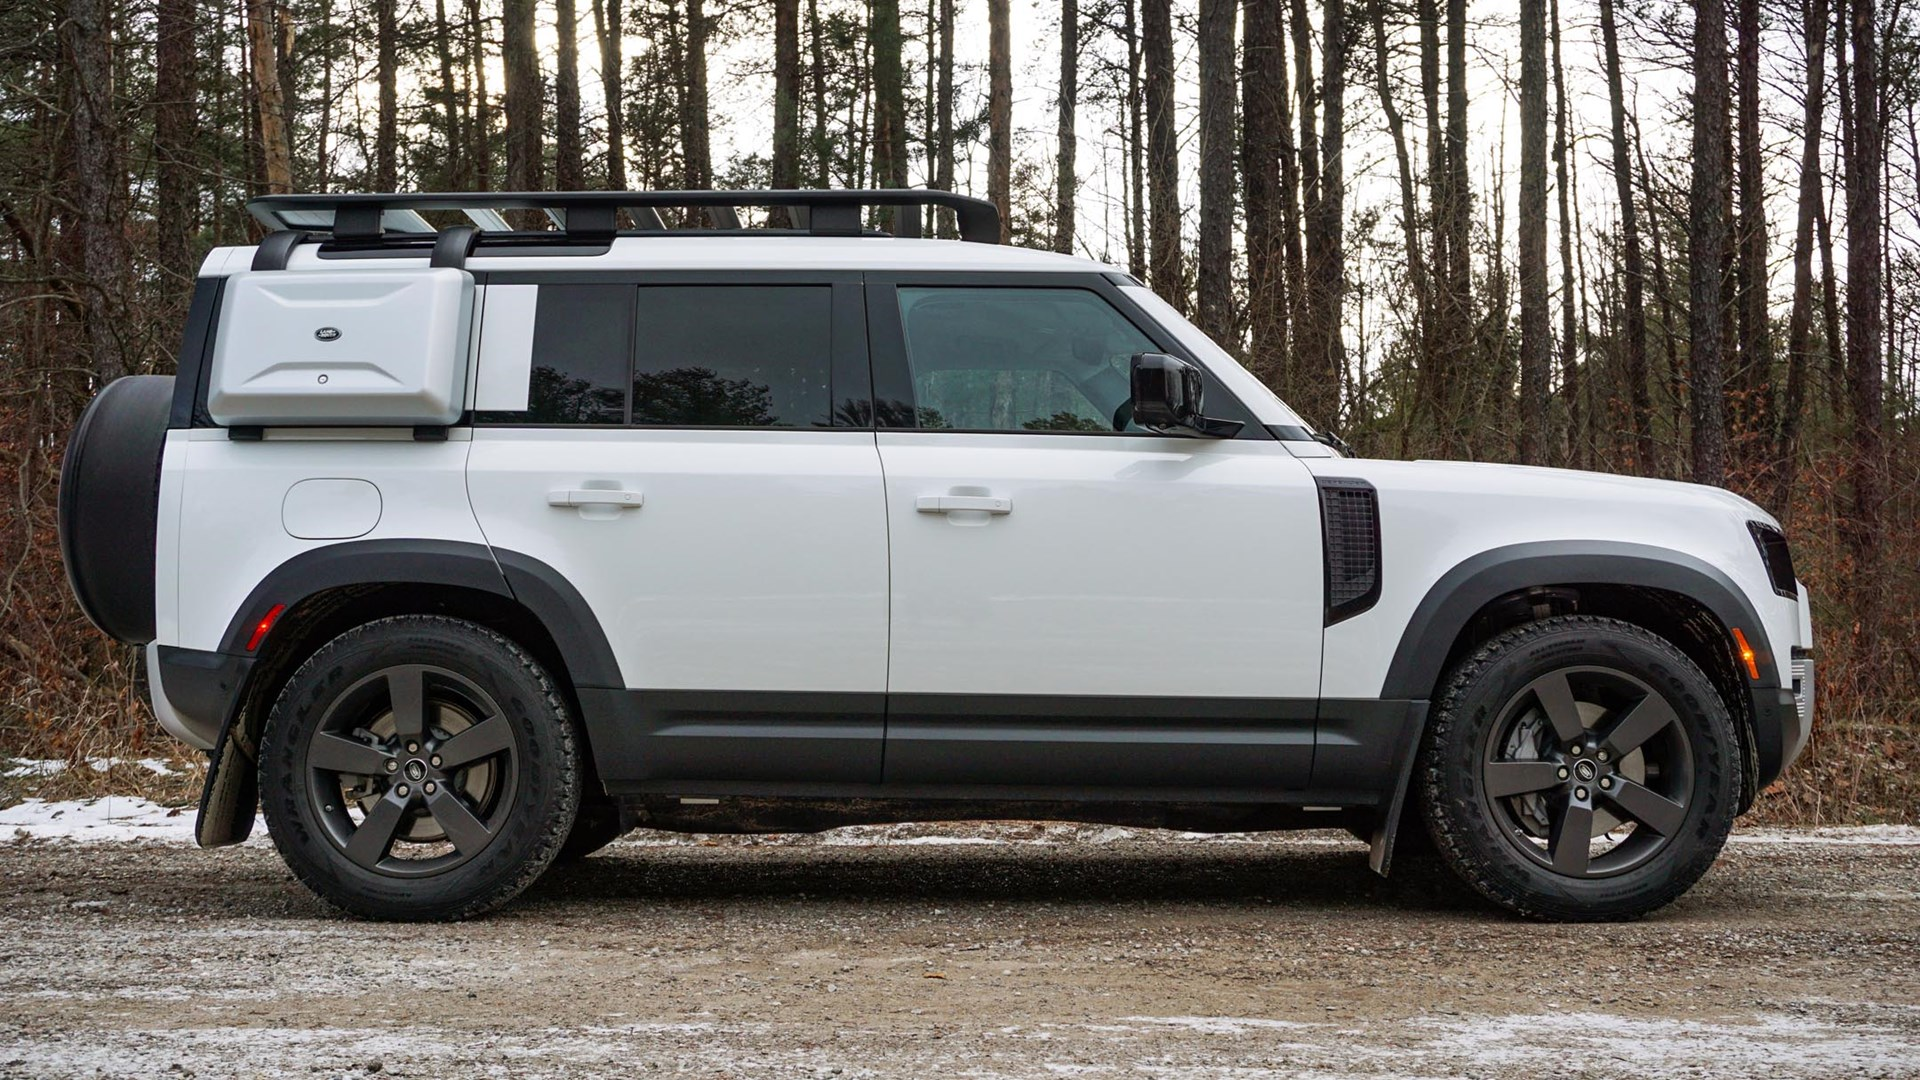 2021 Land Rover Defender Review and Video | Expert Reviews ...